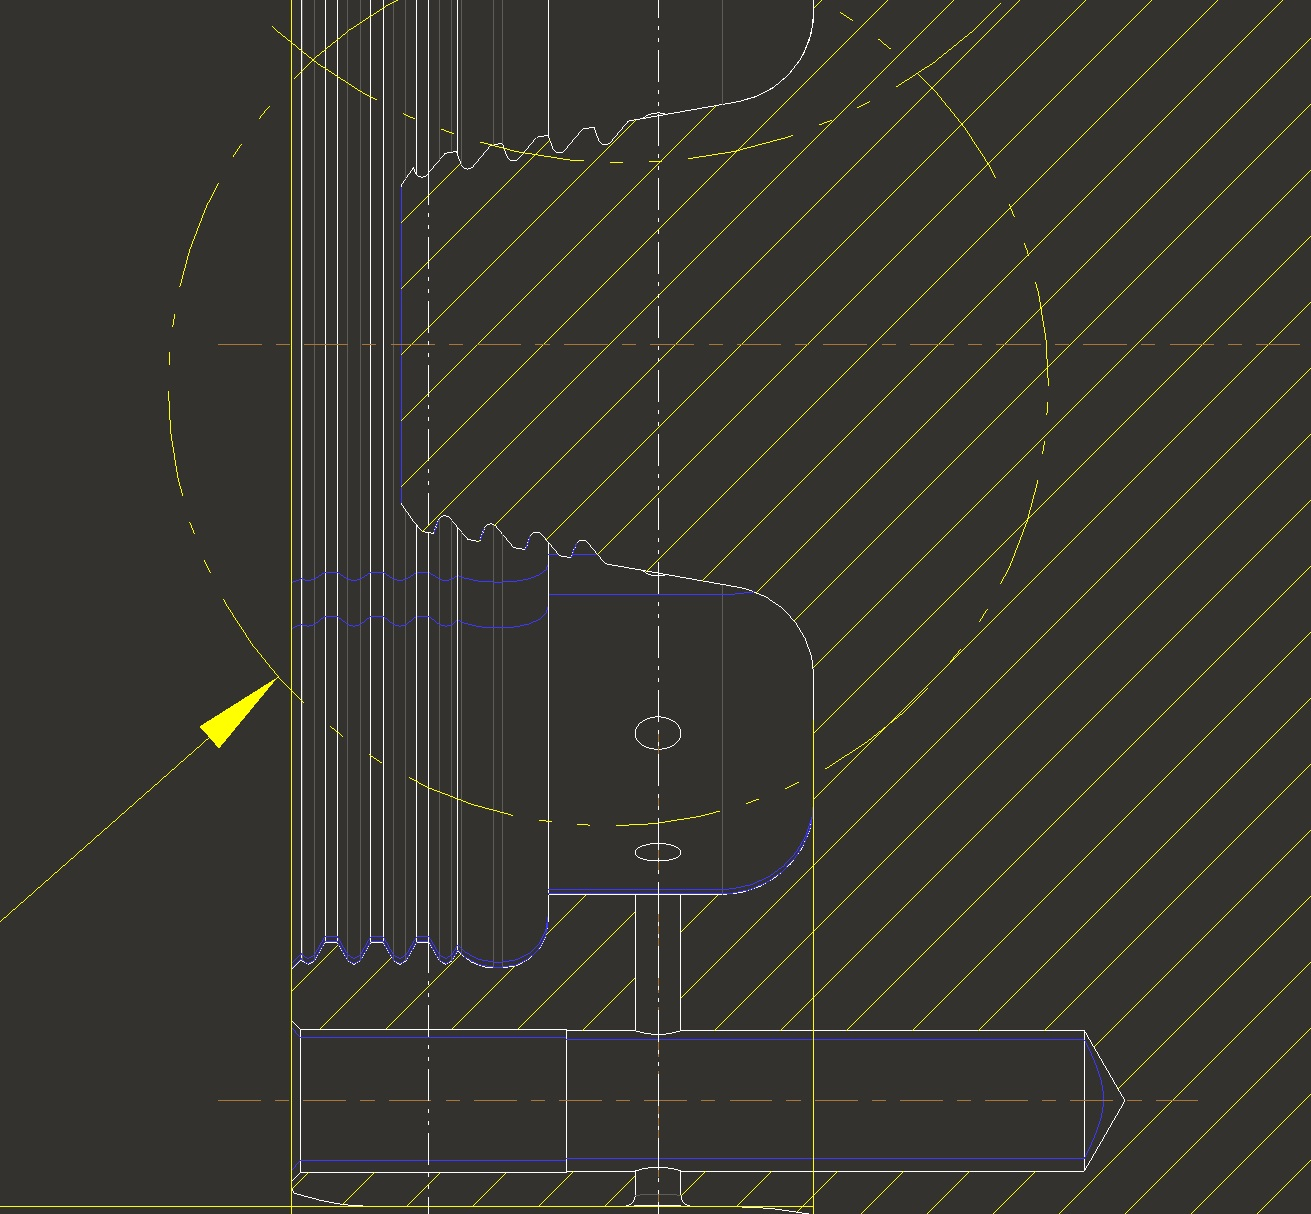 Drawing Lines In C : Unfamiliar blue lines in drawing ptc community